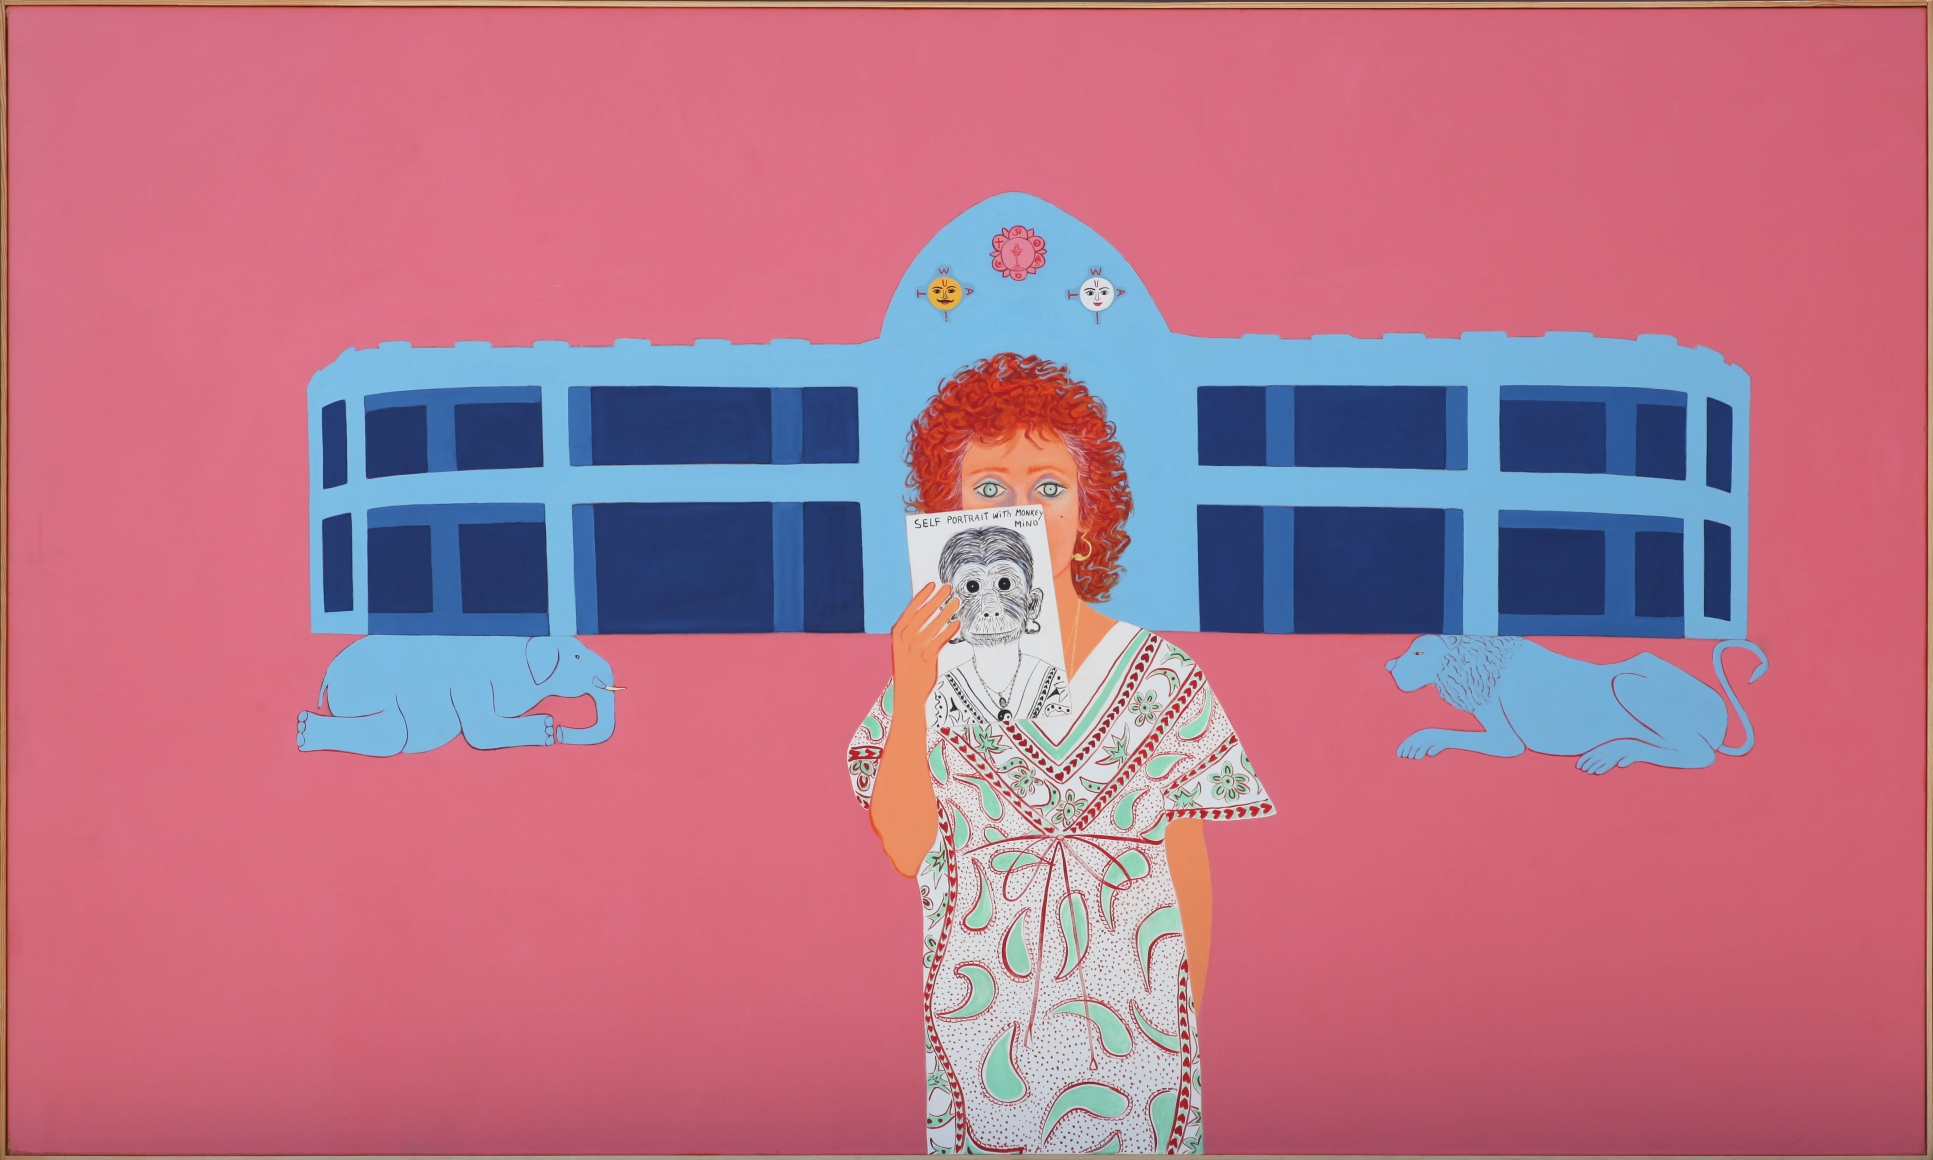 Joan Brown, Homage to Sathya Sai Baba, 1983, oil enamel on canvas, 72 x 120 inches, © The Joan Brown Estate.